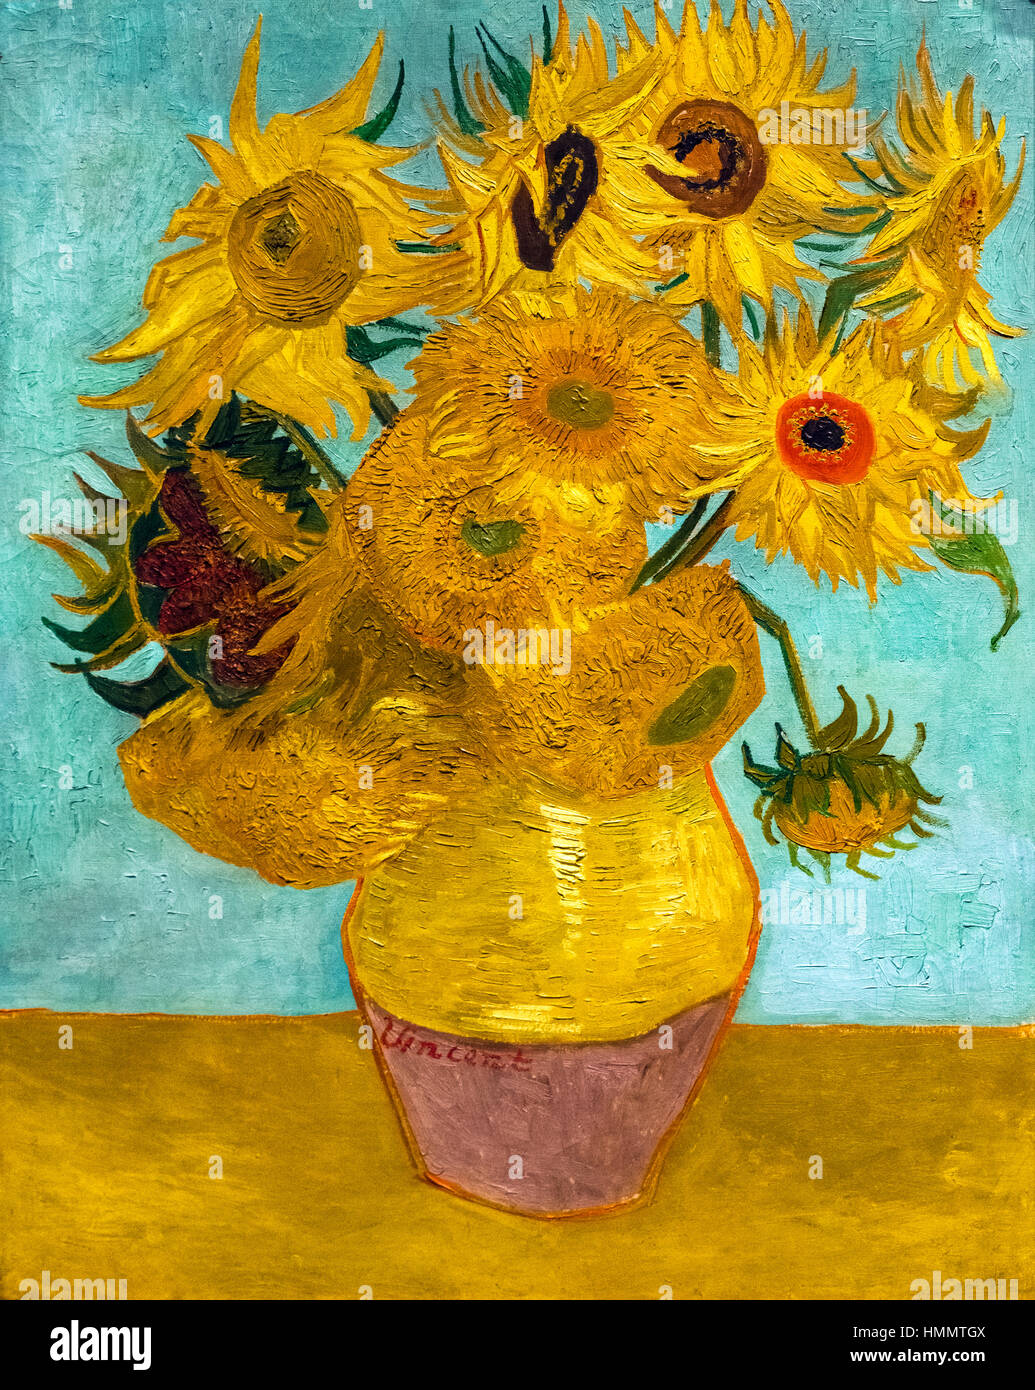 Van Gogh Sunflowers Stock Photos  Van Gogh Sunflowers Stock Images  Alamy